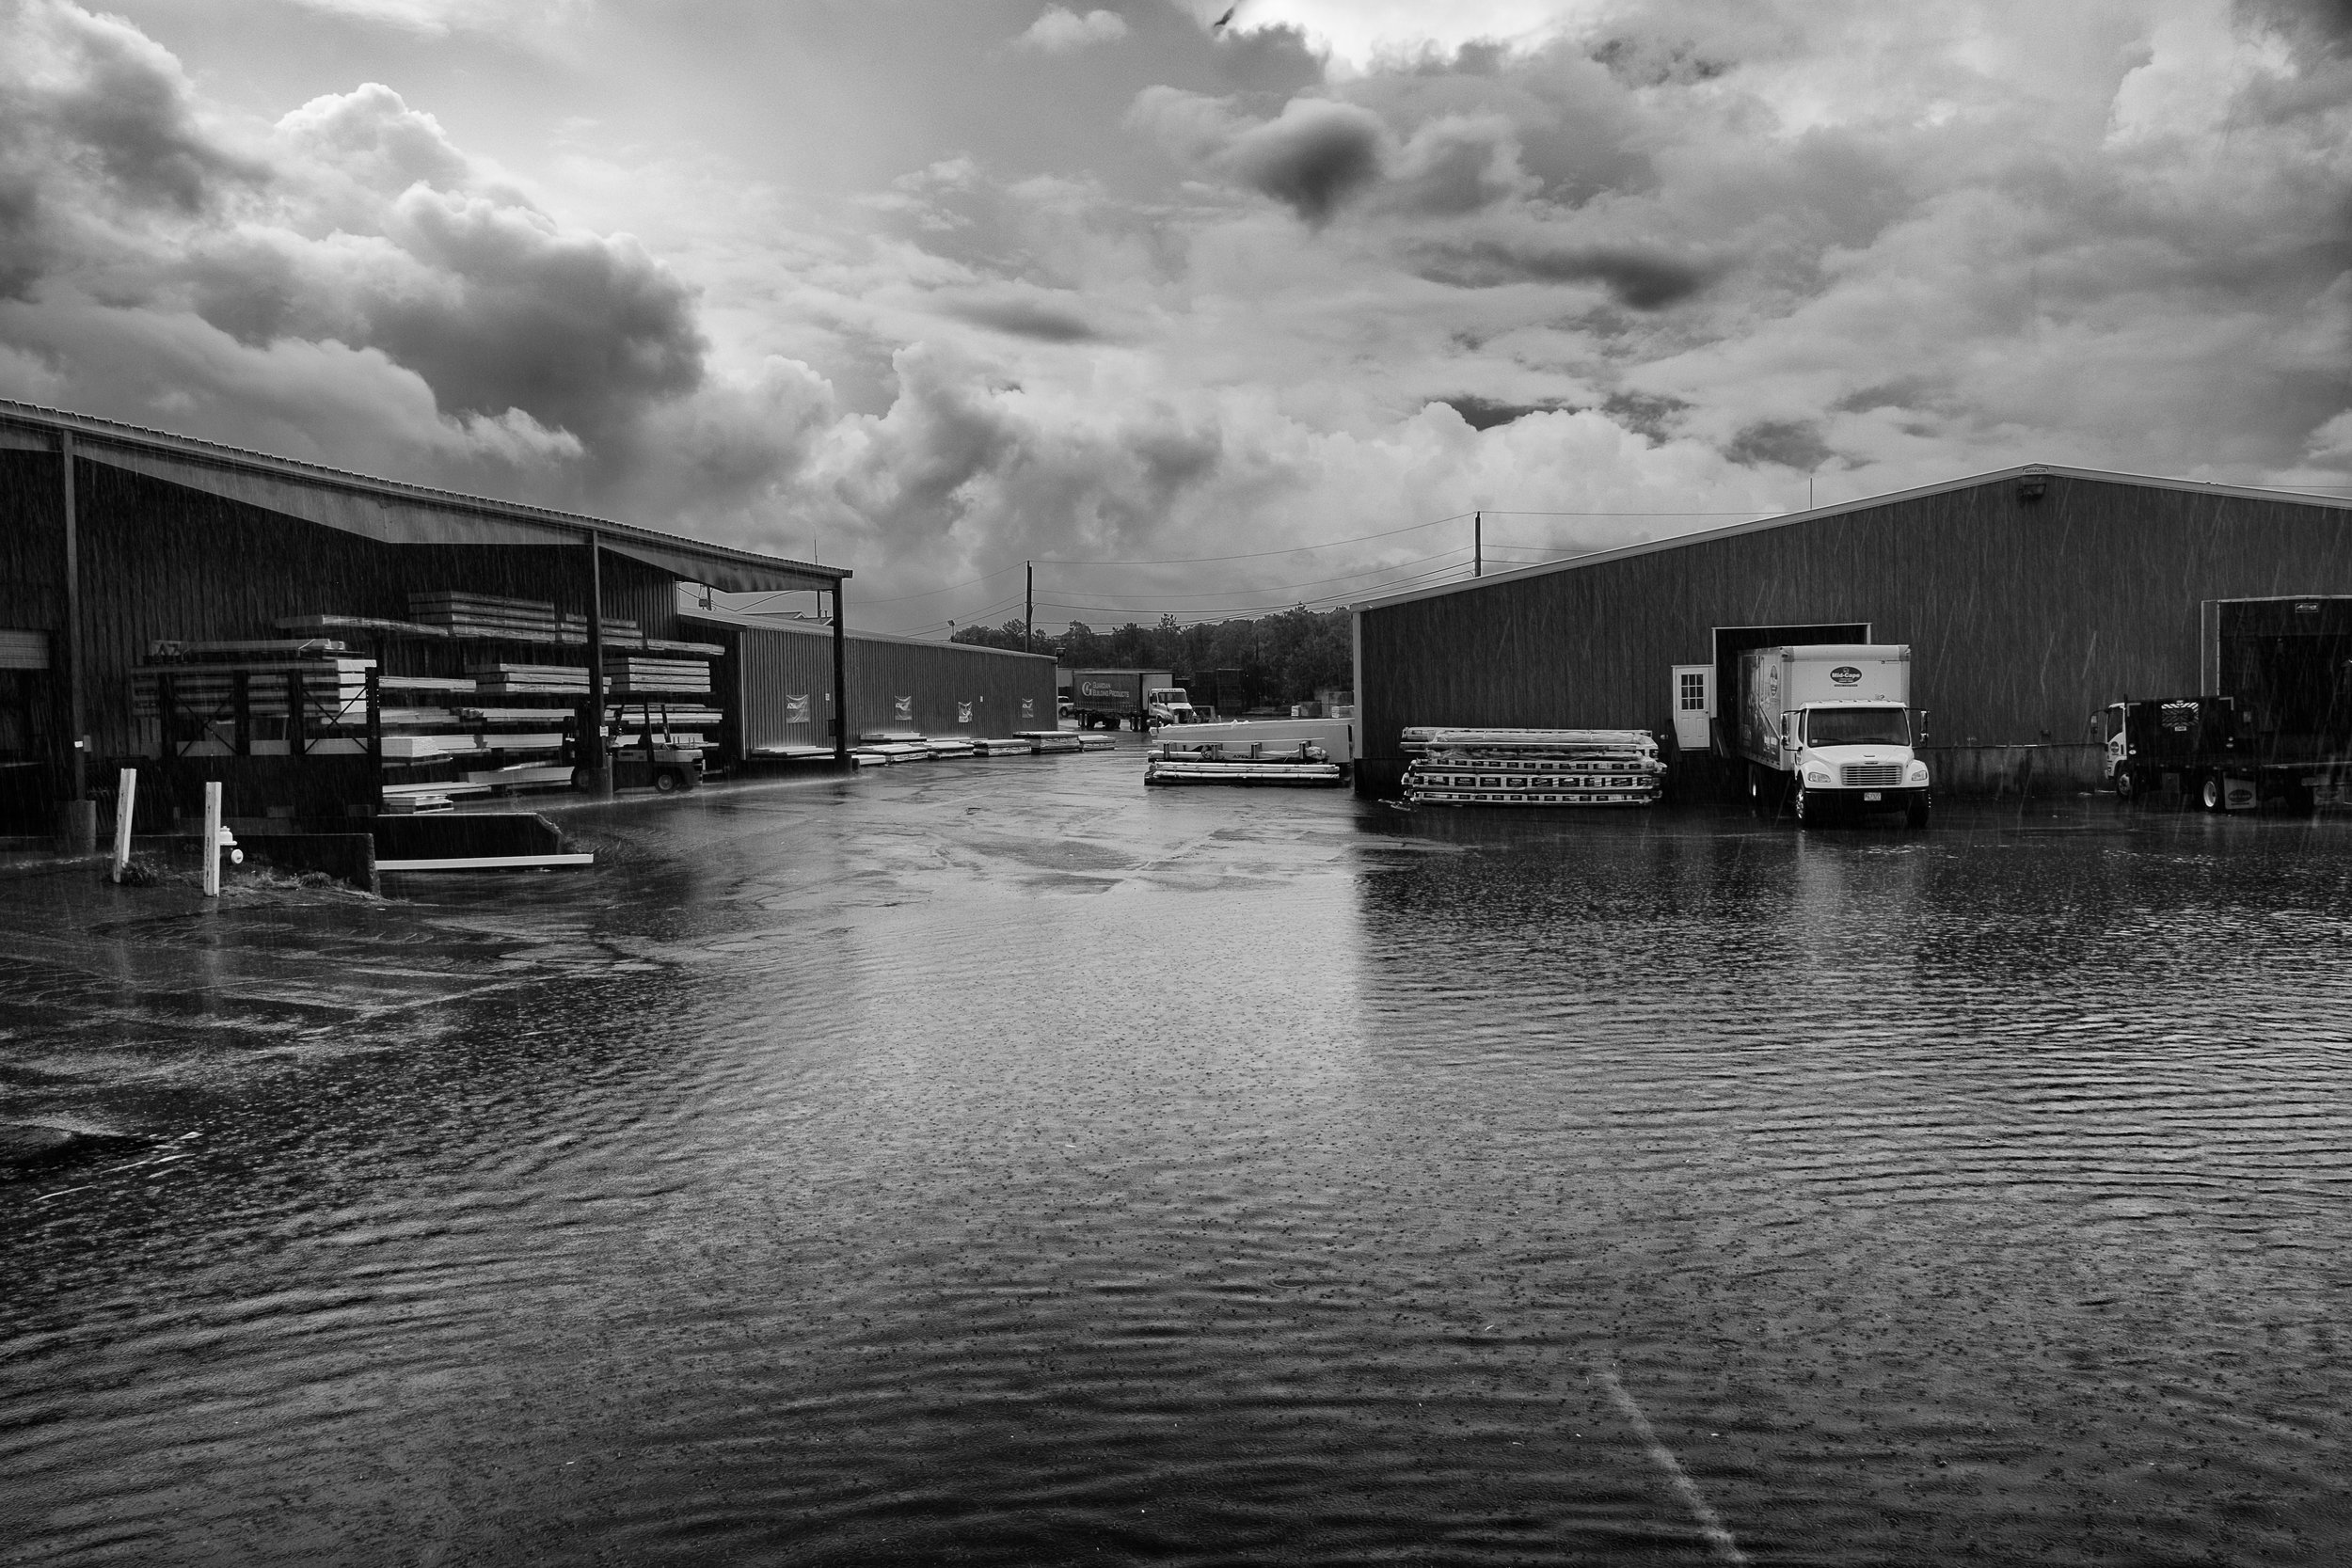 During heavy rains, the parking lot in between Building 9 and Building 4 floods to nearly knee high water at some points. Despite this, the yard keeps humming away.